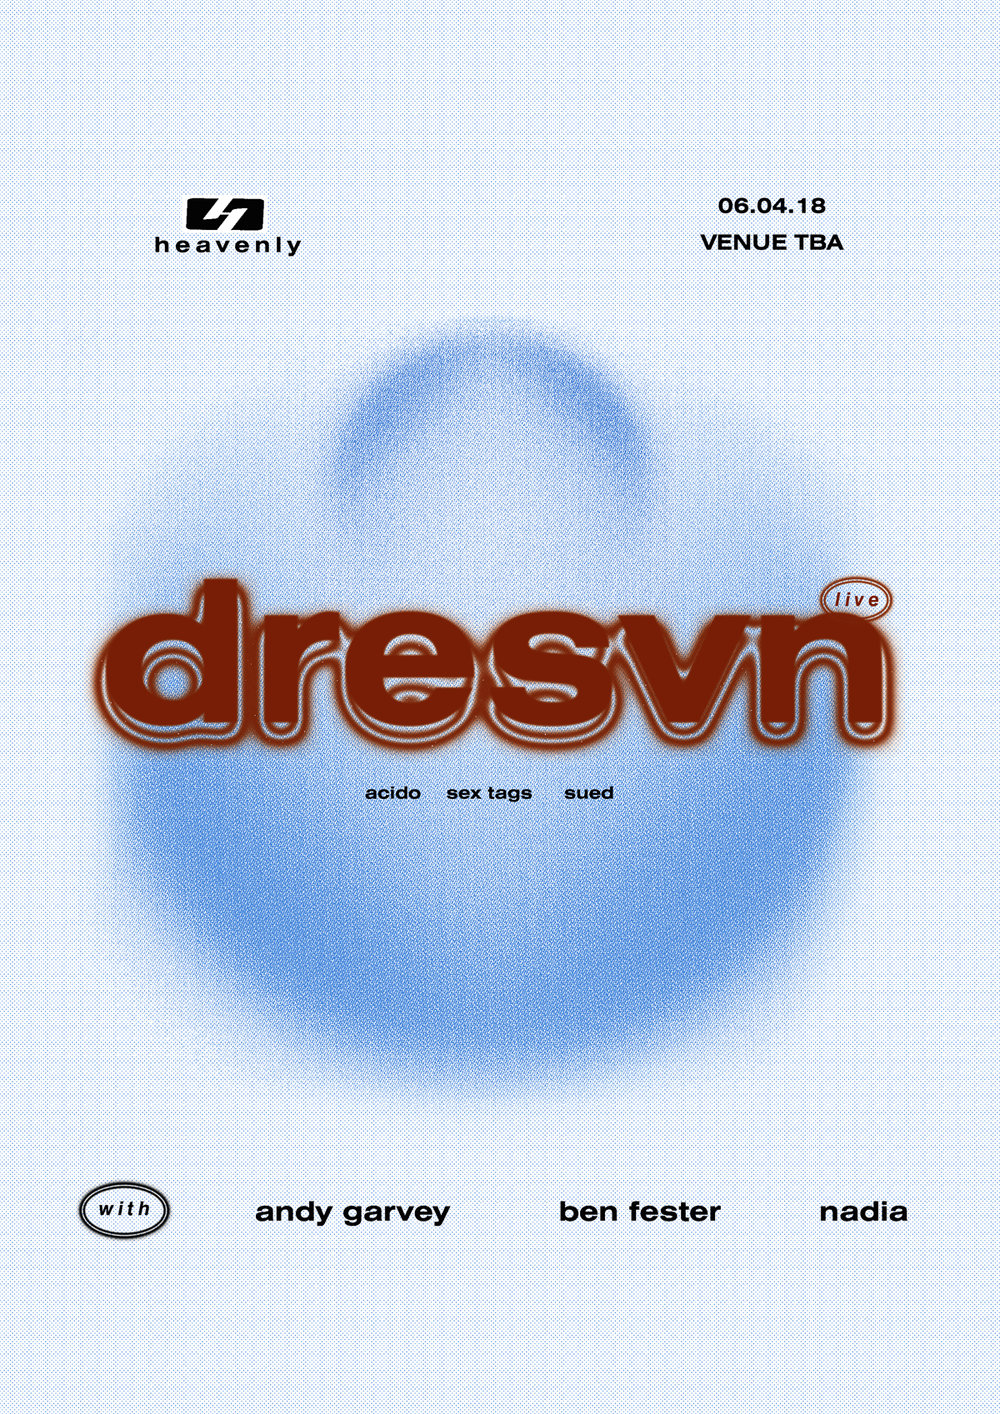 Heavenly-Dresvn1.jpg